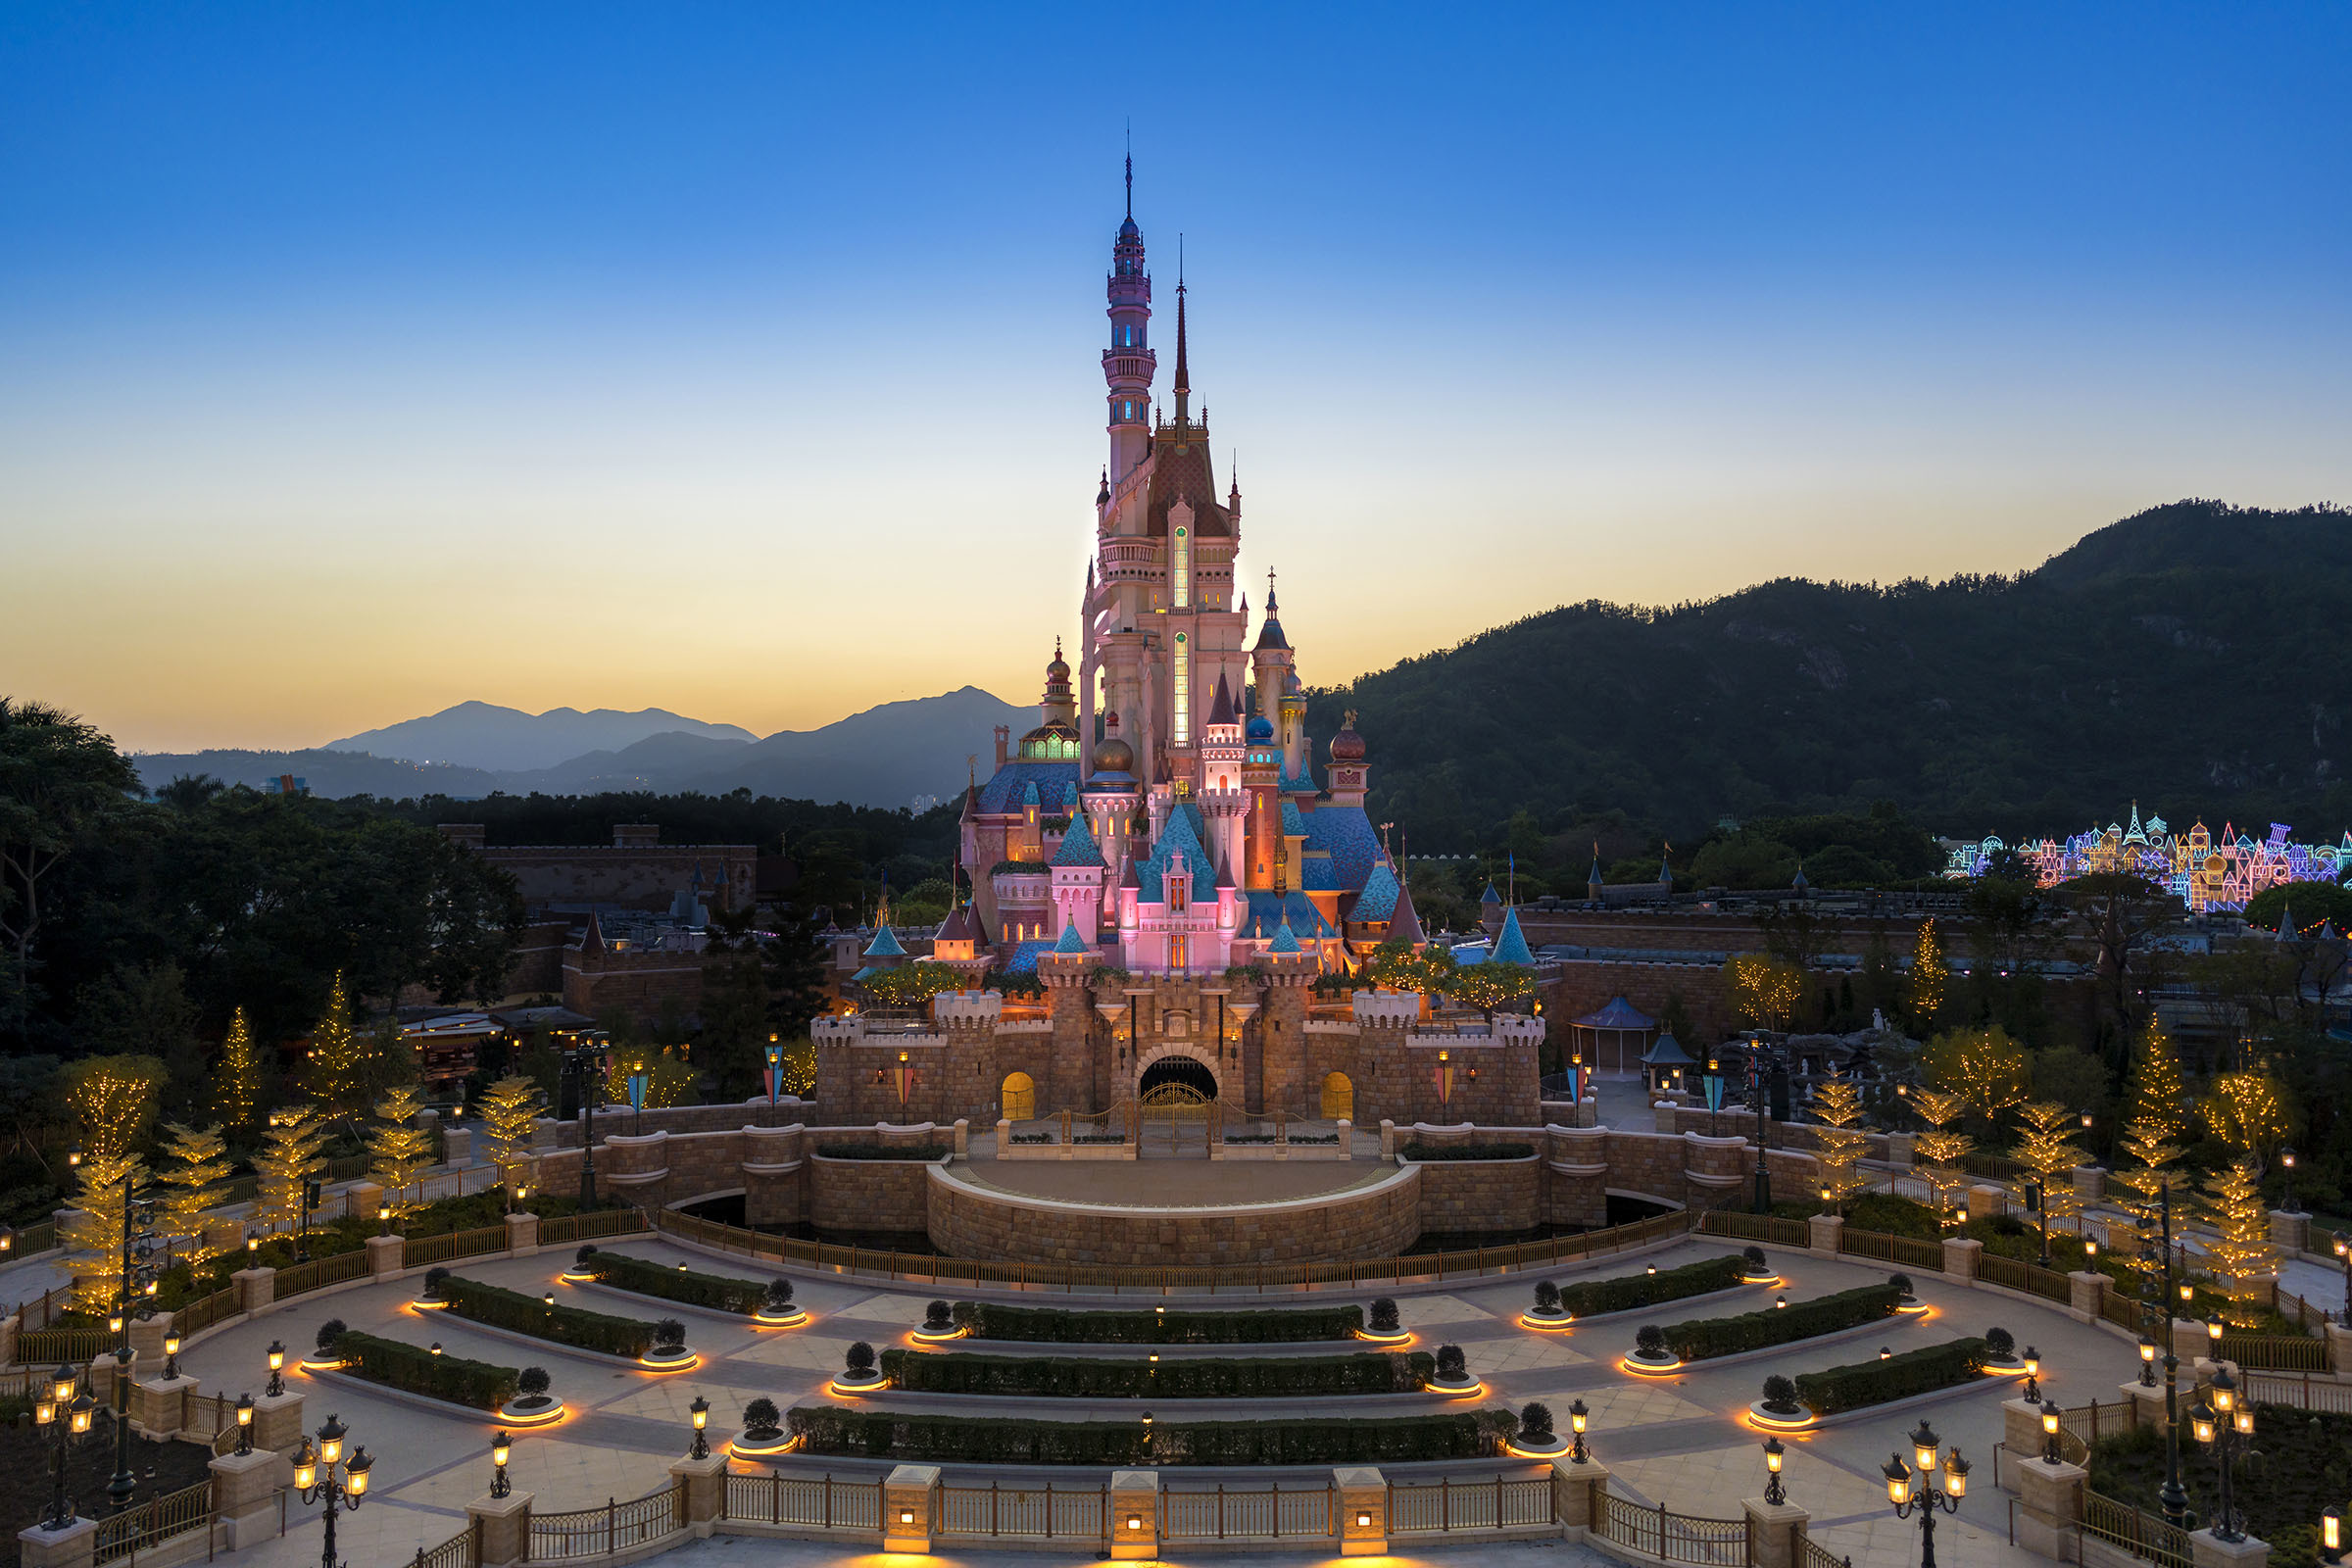 Hong Kong Disneyland castle of magic dreams